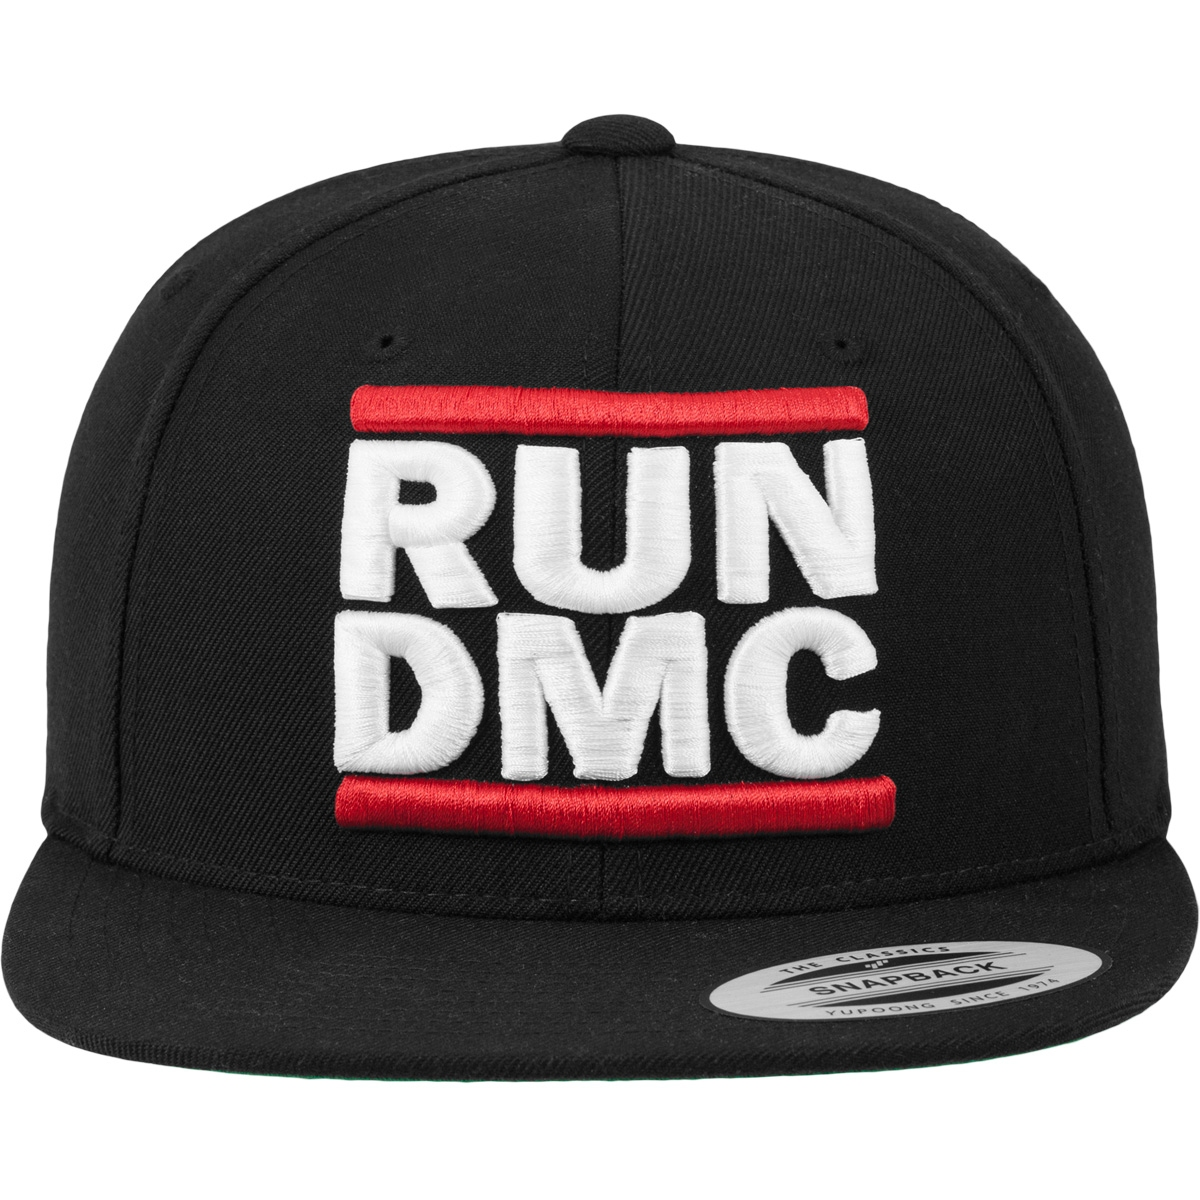 You searched for: run dmc hat! Etsy is the home to thousands of handmade, vintage, and one-of-a-kind products and gifts related to your search. No matter what you're looking for or where you are in the world, our global marketplace of sellers can help you find unique and affordable options. Let's get started!